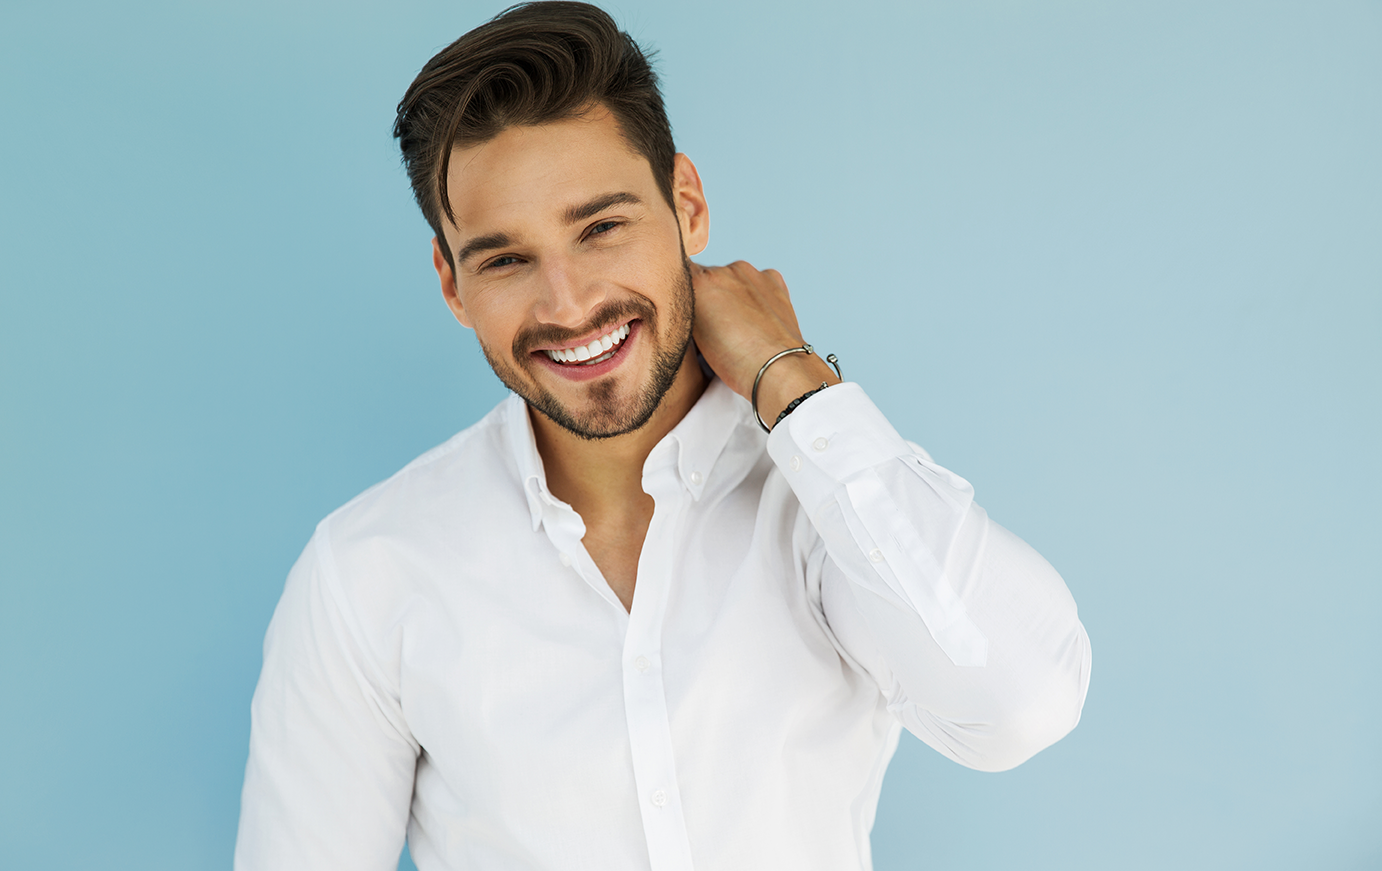 Man in white shirt smiling.